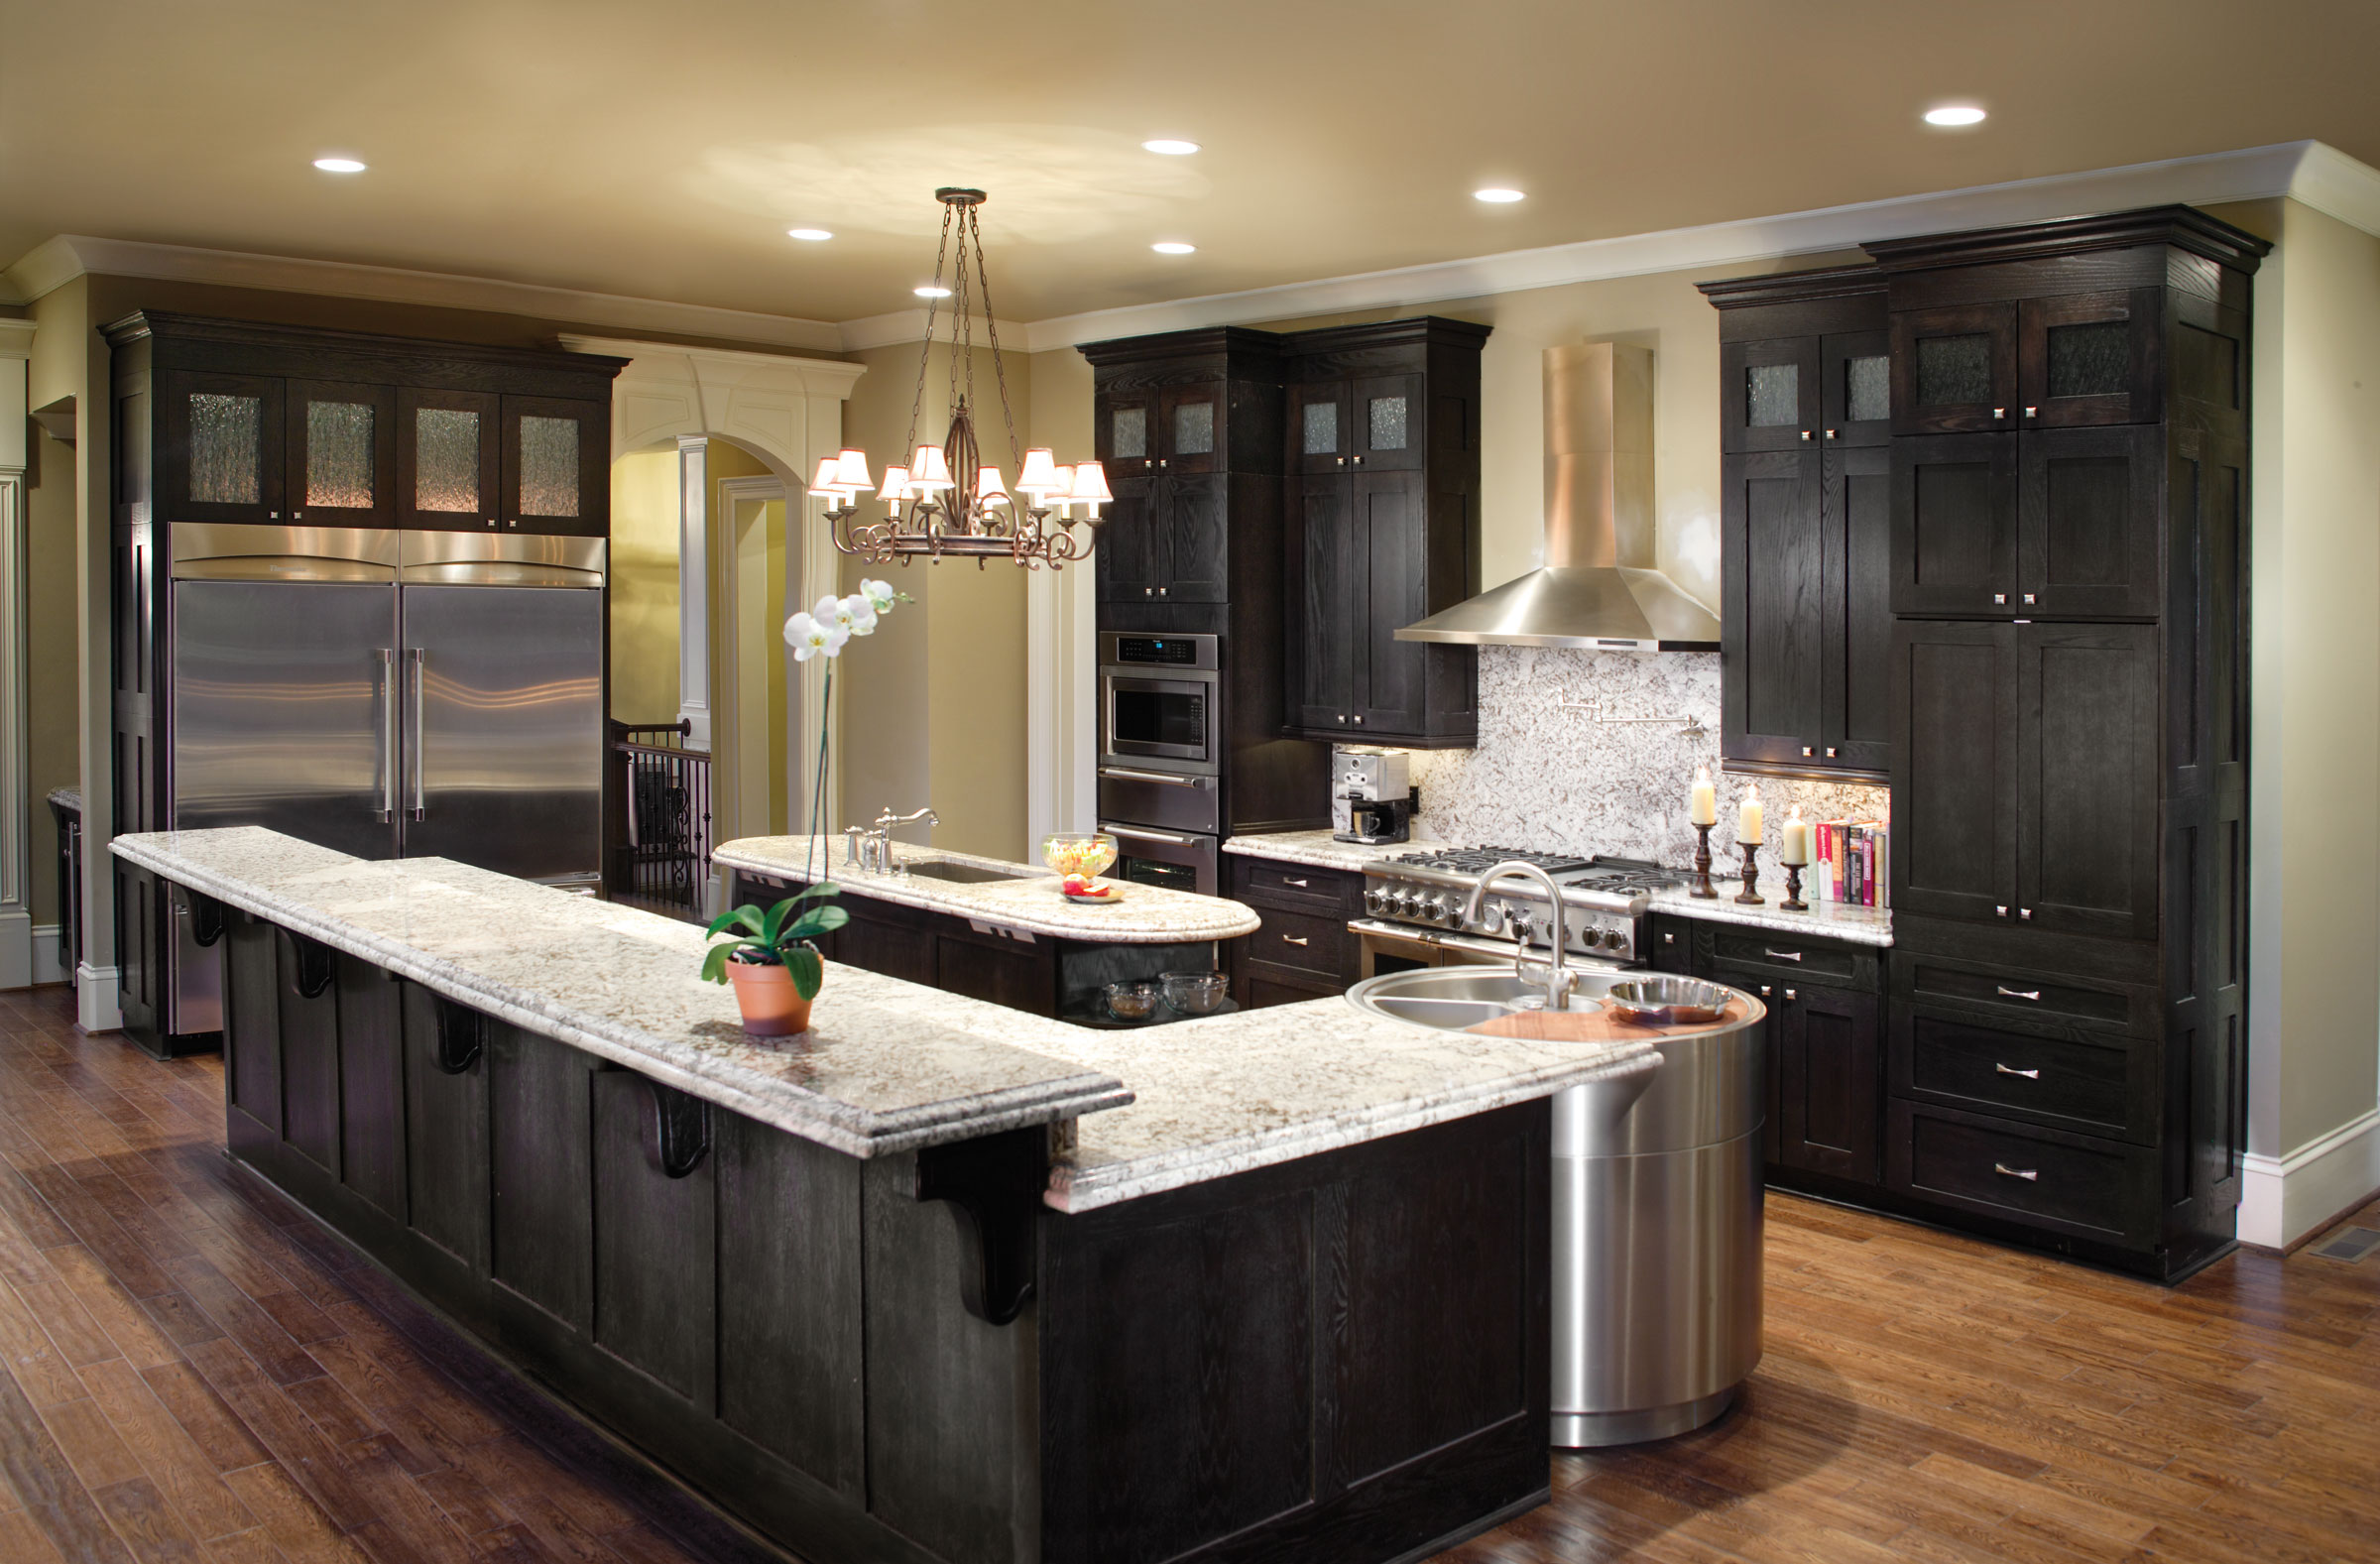 Kitchen Remodeling Phoenix Ideas Stunning Custom Kitchen & Bathroom Cabinets Company In Phoenix Az . Decorating Design